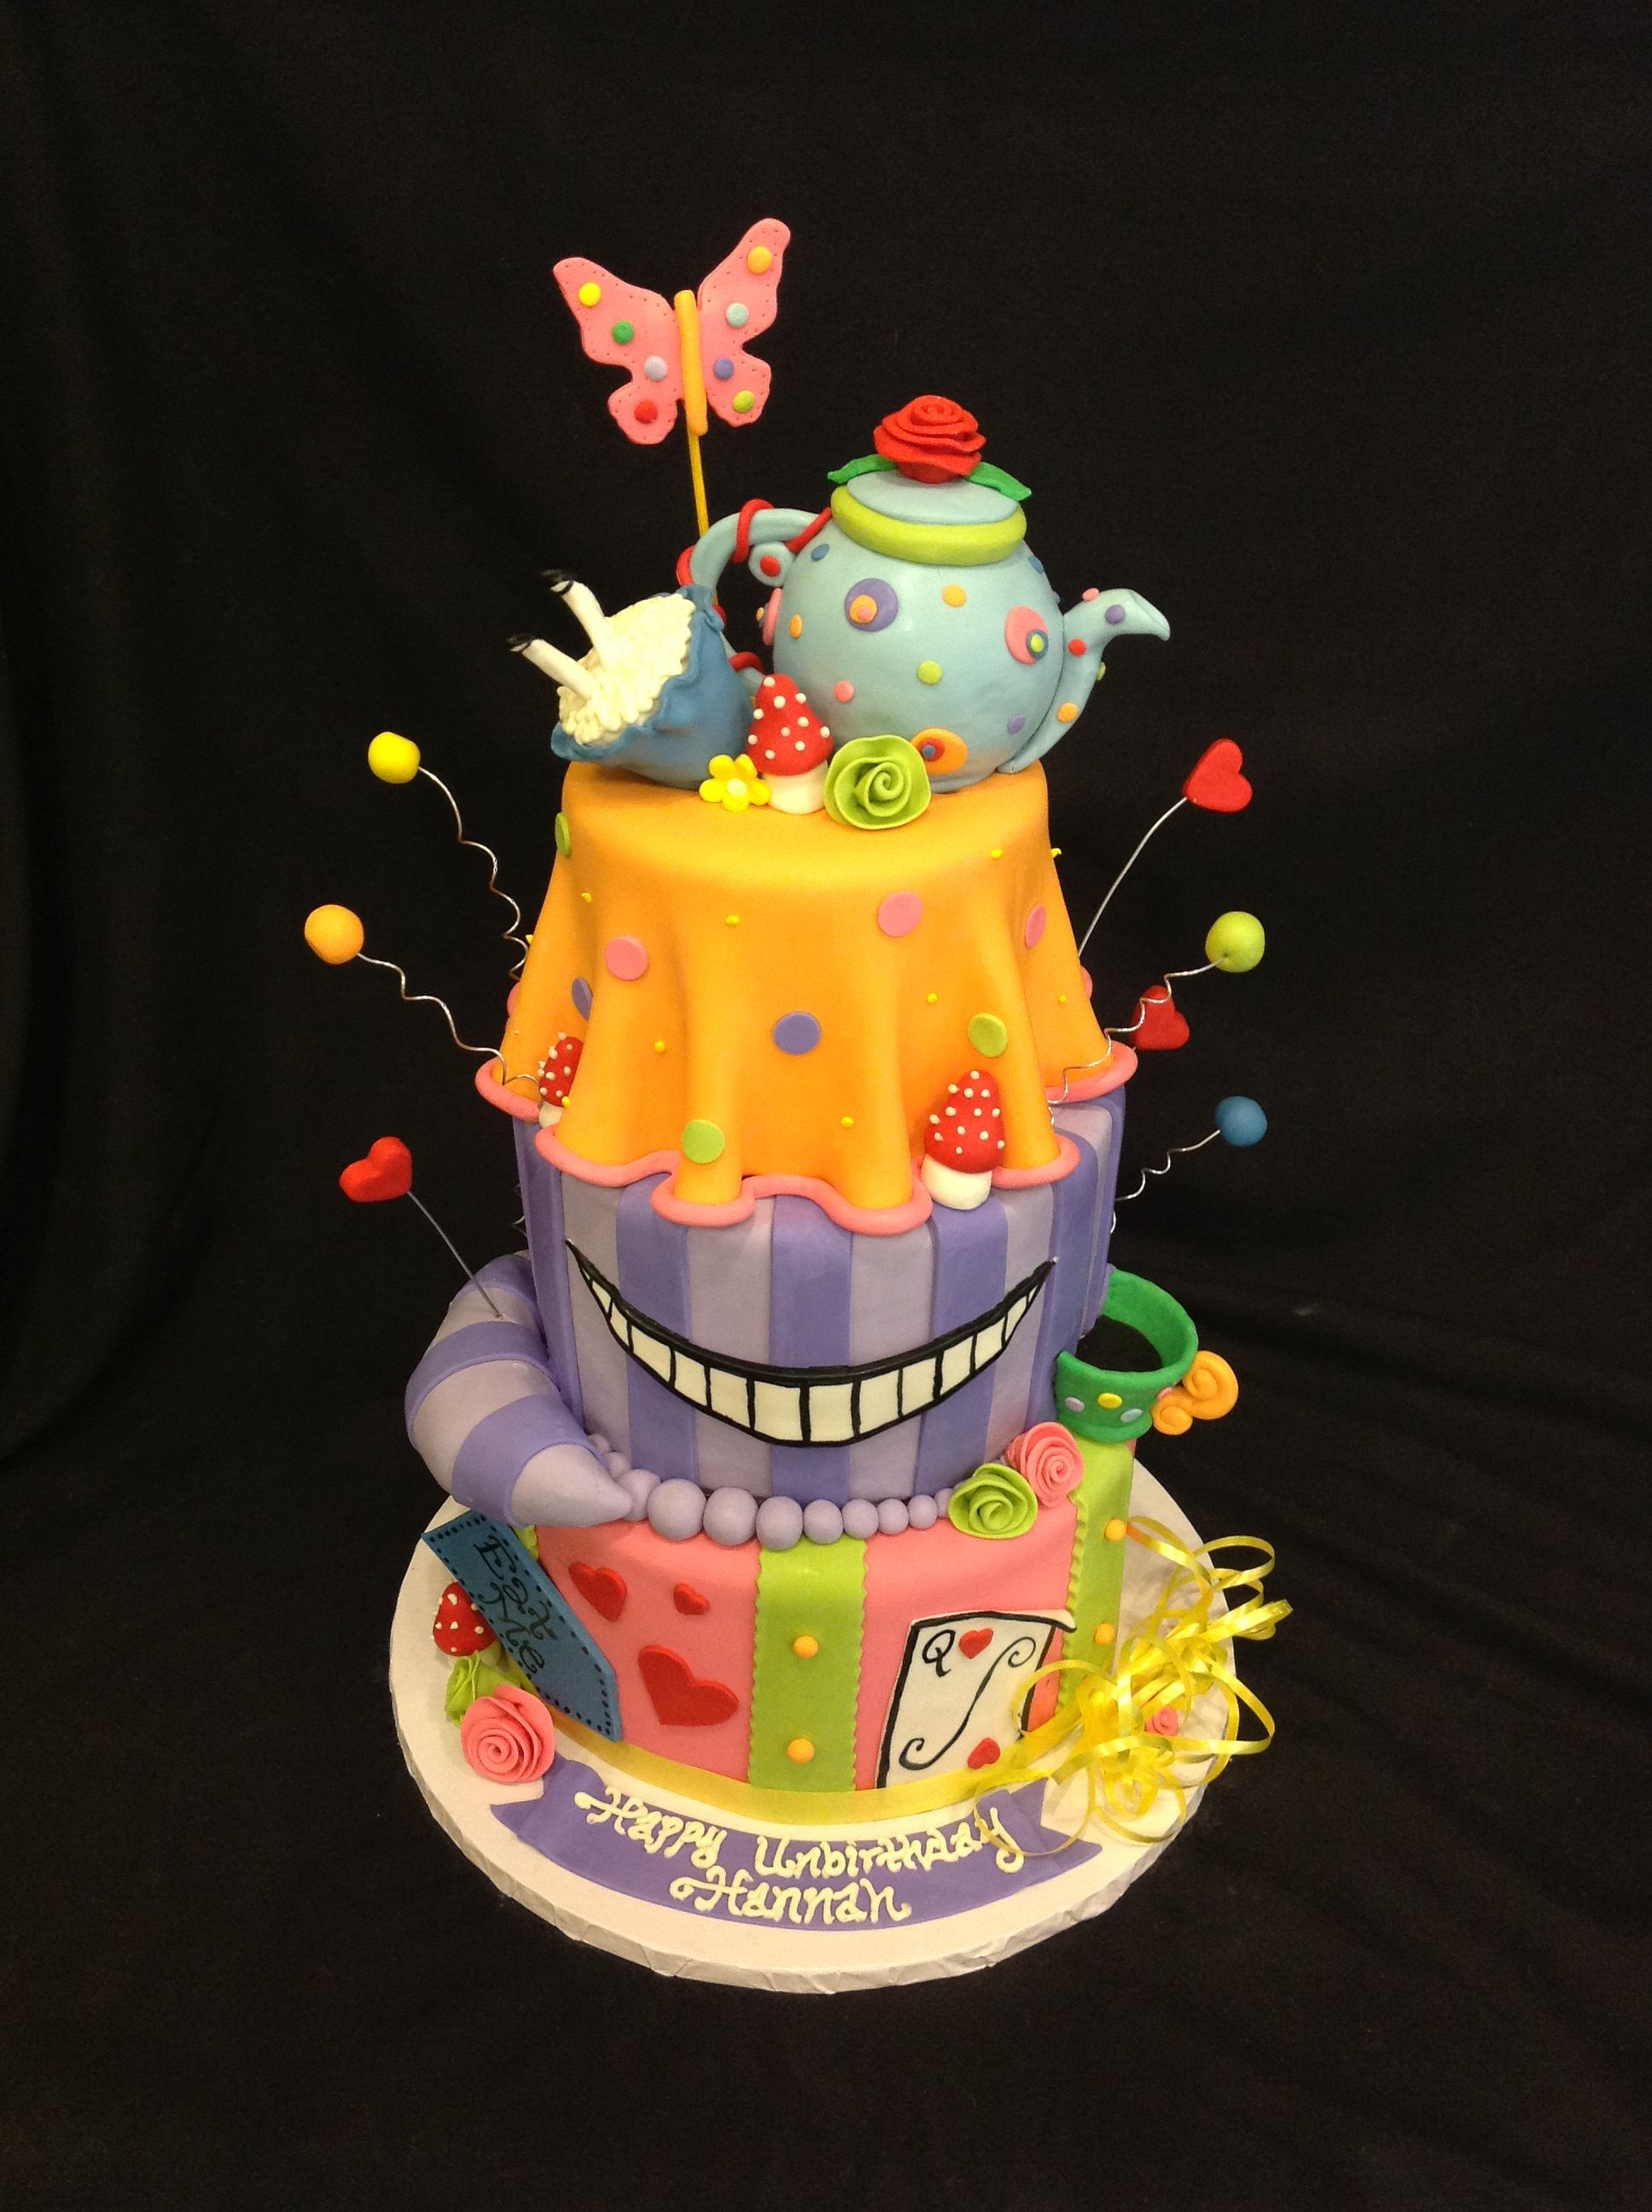 Simply Mad Alice in Wonderland Cake by Short North Piece of Cake